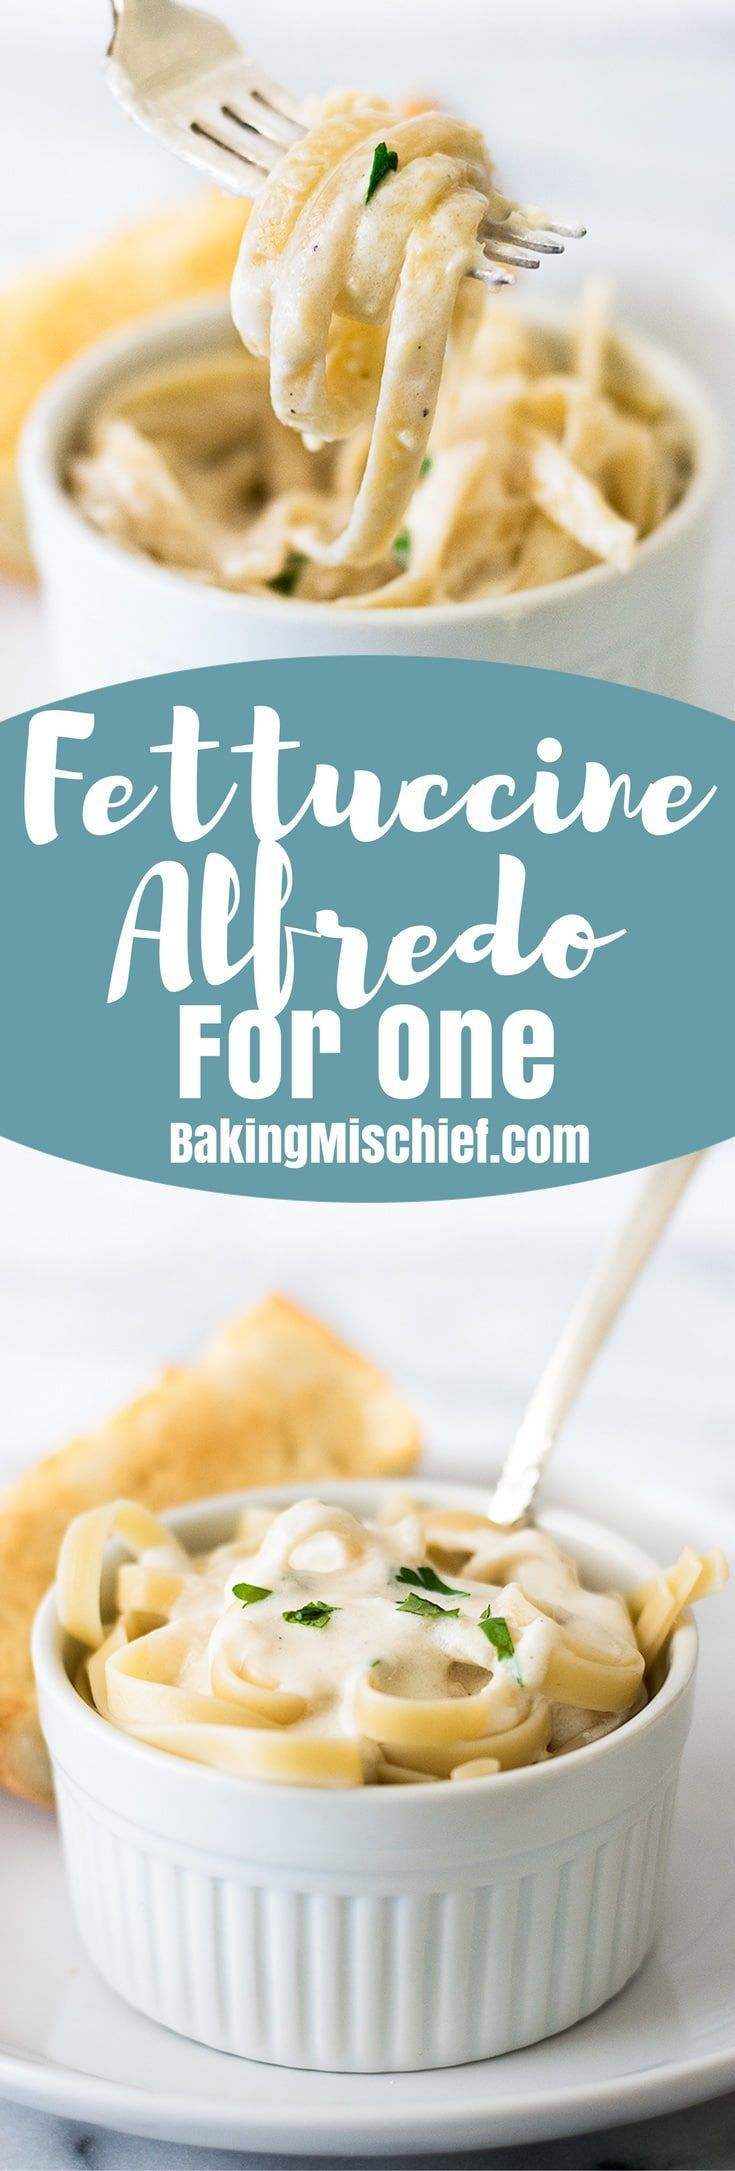 Best 25 one person meals ideas on pinterest easy recipes for quick and easy fettuccine alfredo for one forumfinder Images